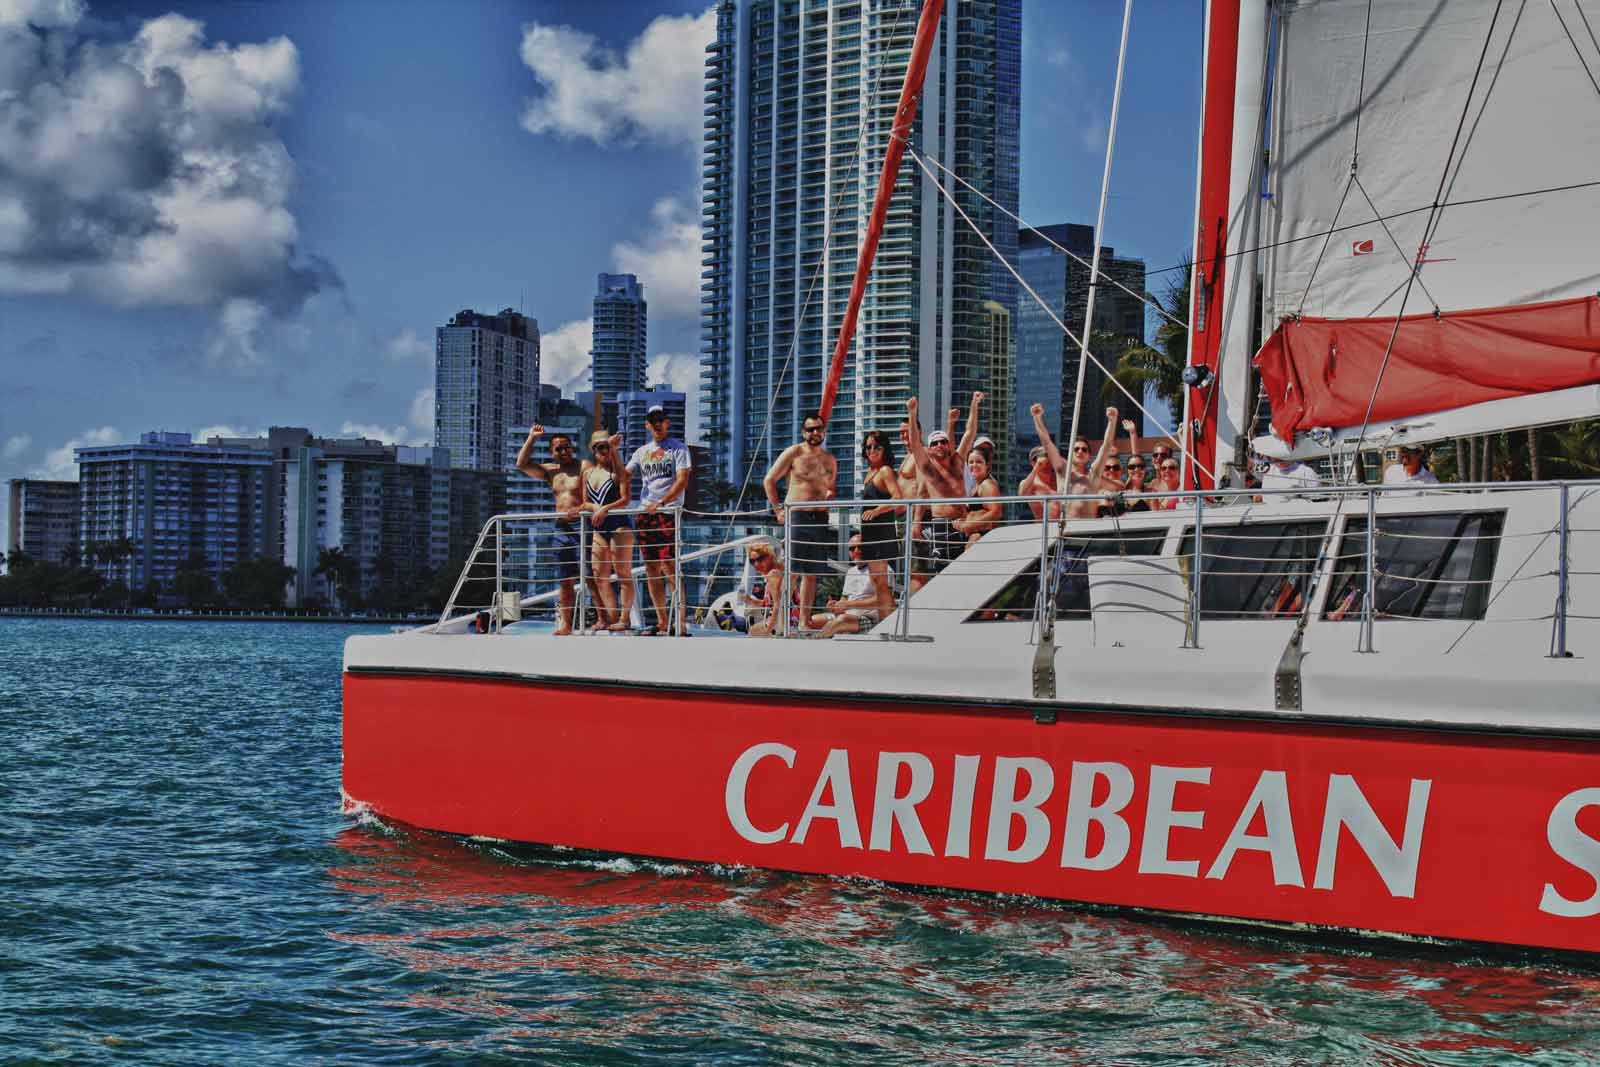 Private Yacht Charter Miami On Our Caribbean Spirit Catamaransailing Charters Fort Lauderdale Cruise